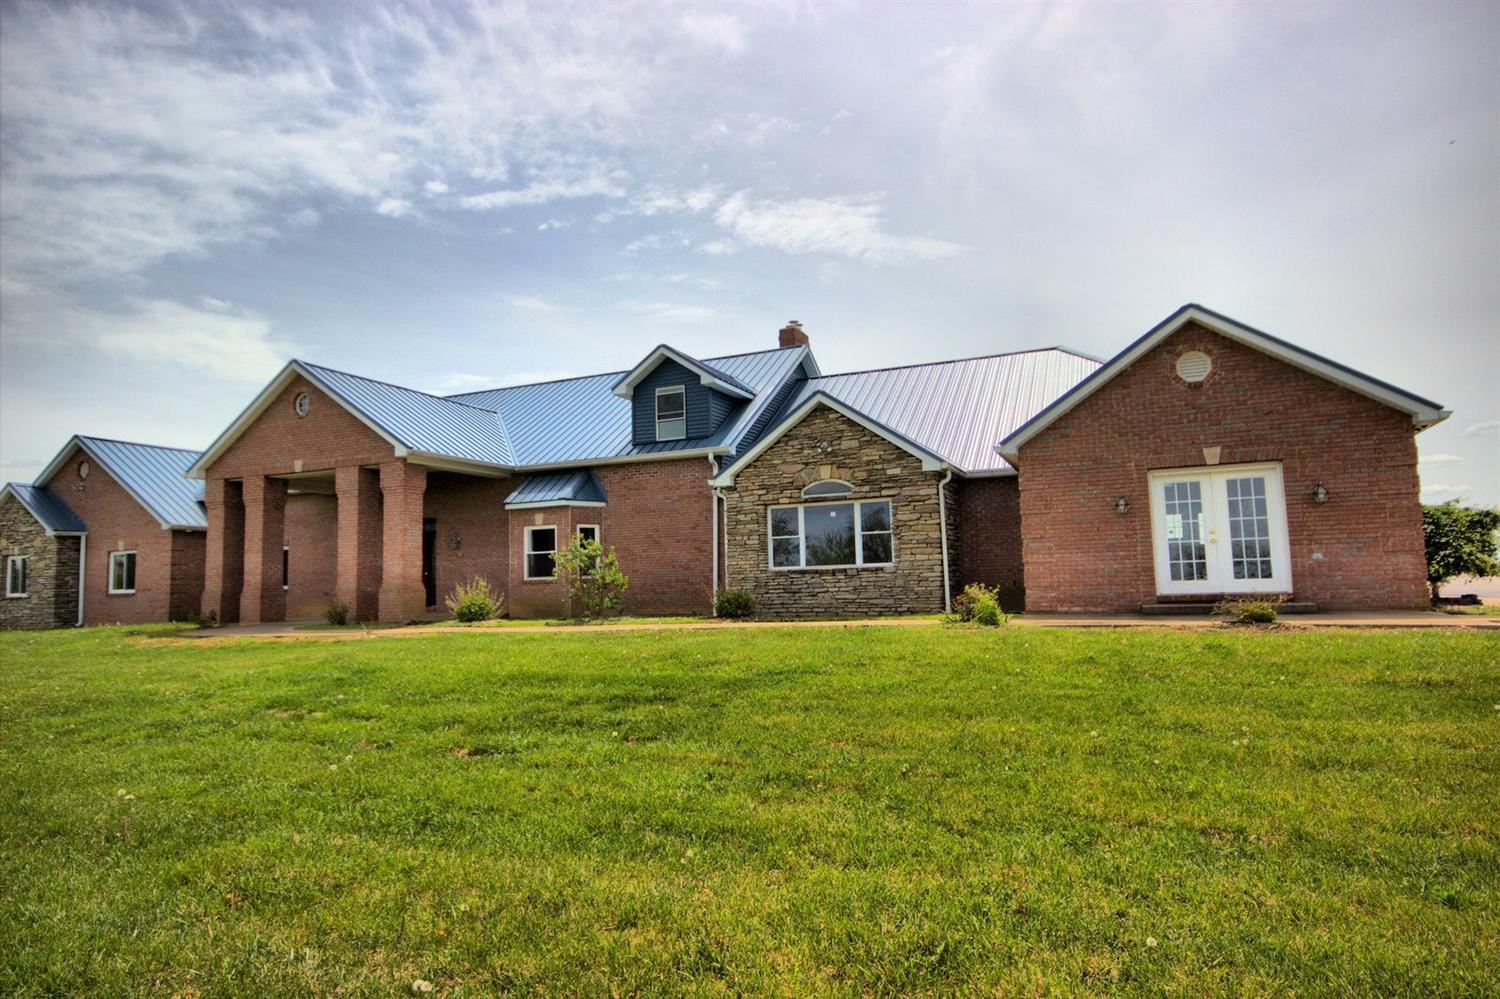 11790 Napoleon Zion Station Rd, Dry Ridge, KY 41035